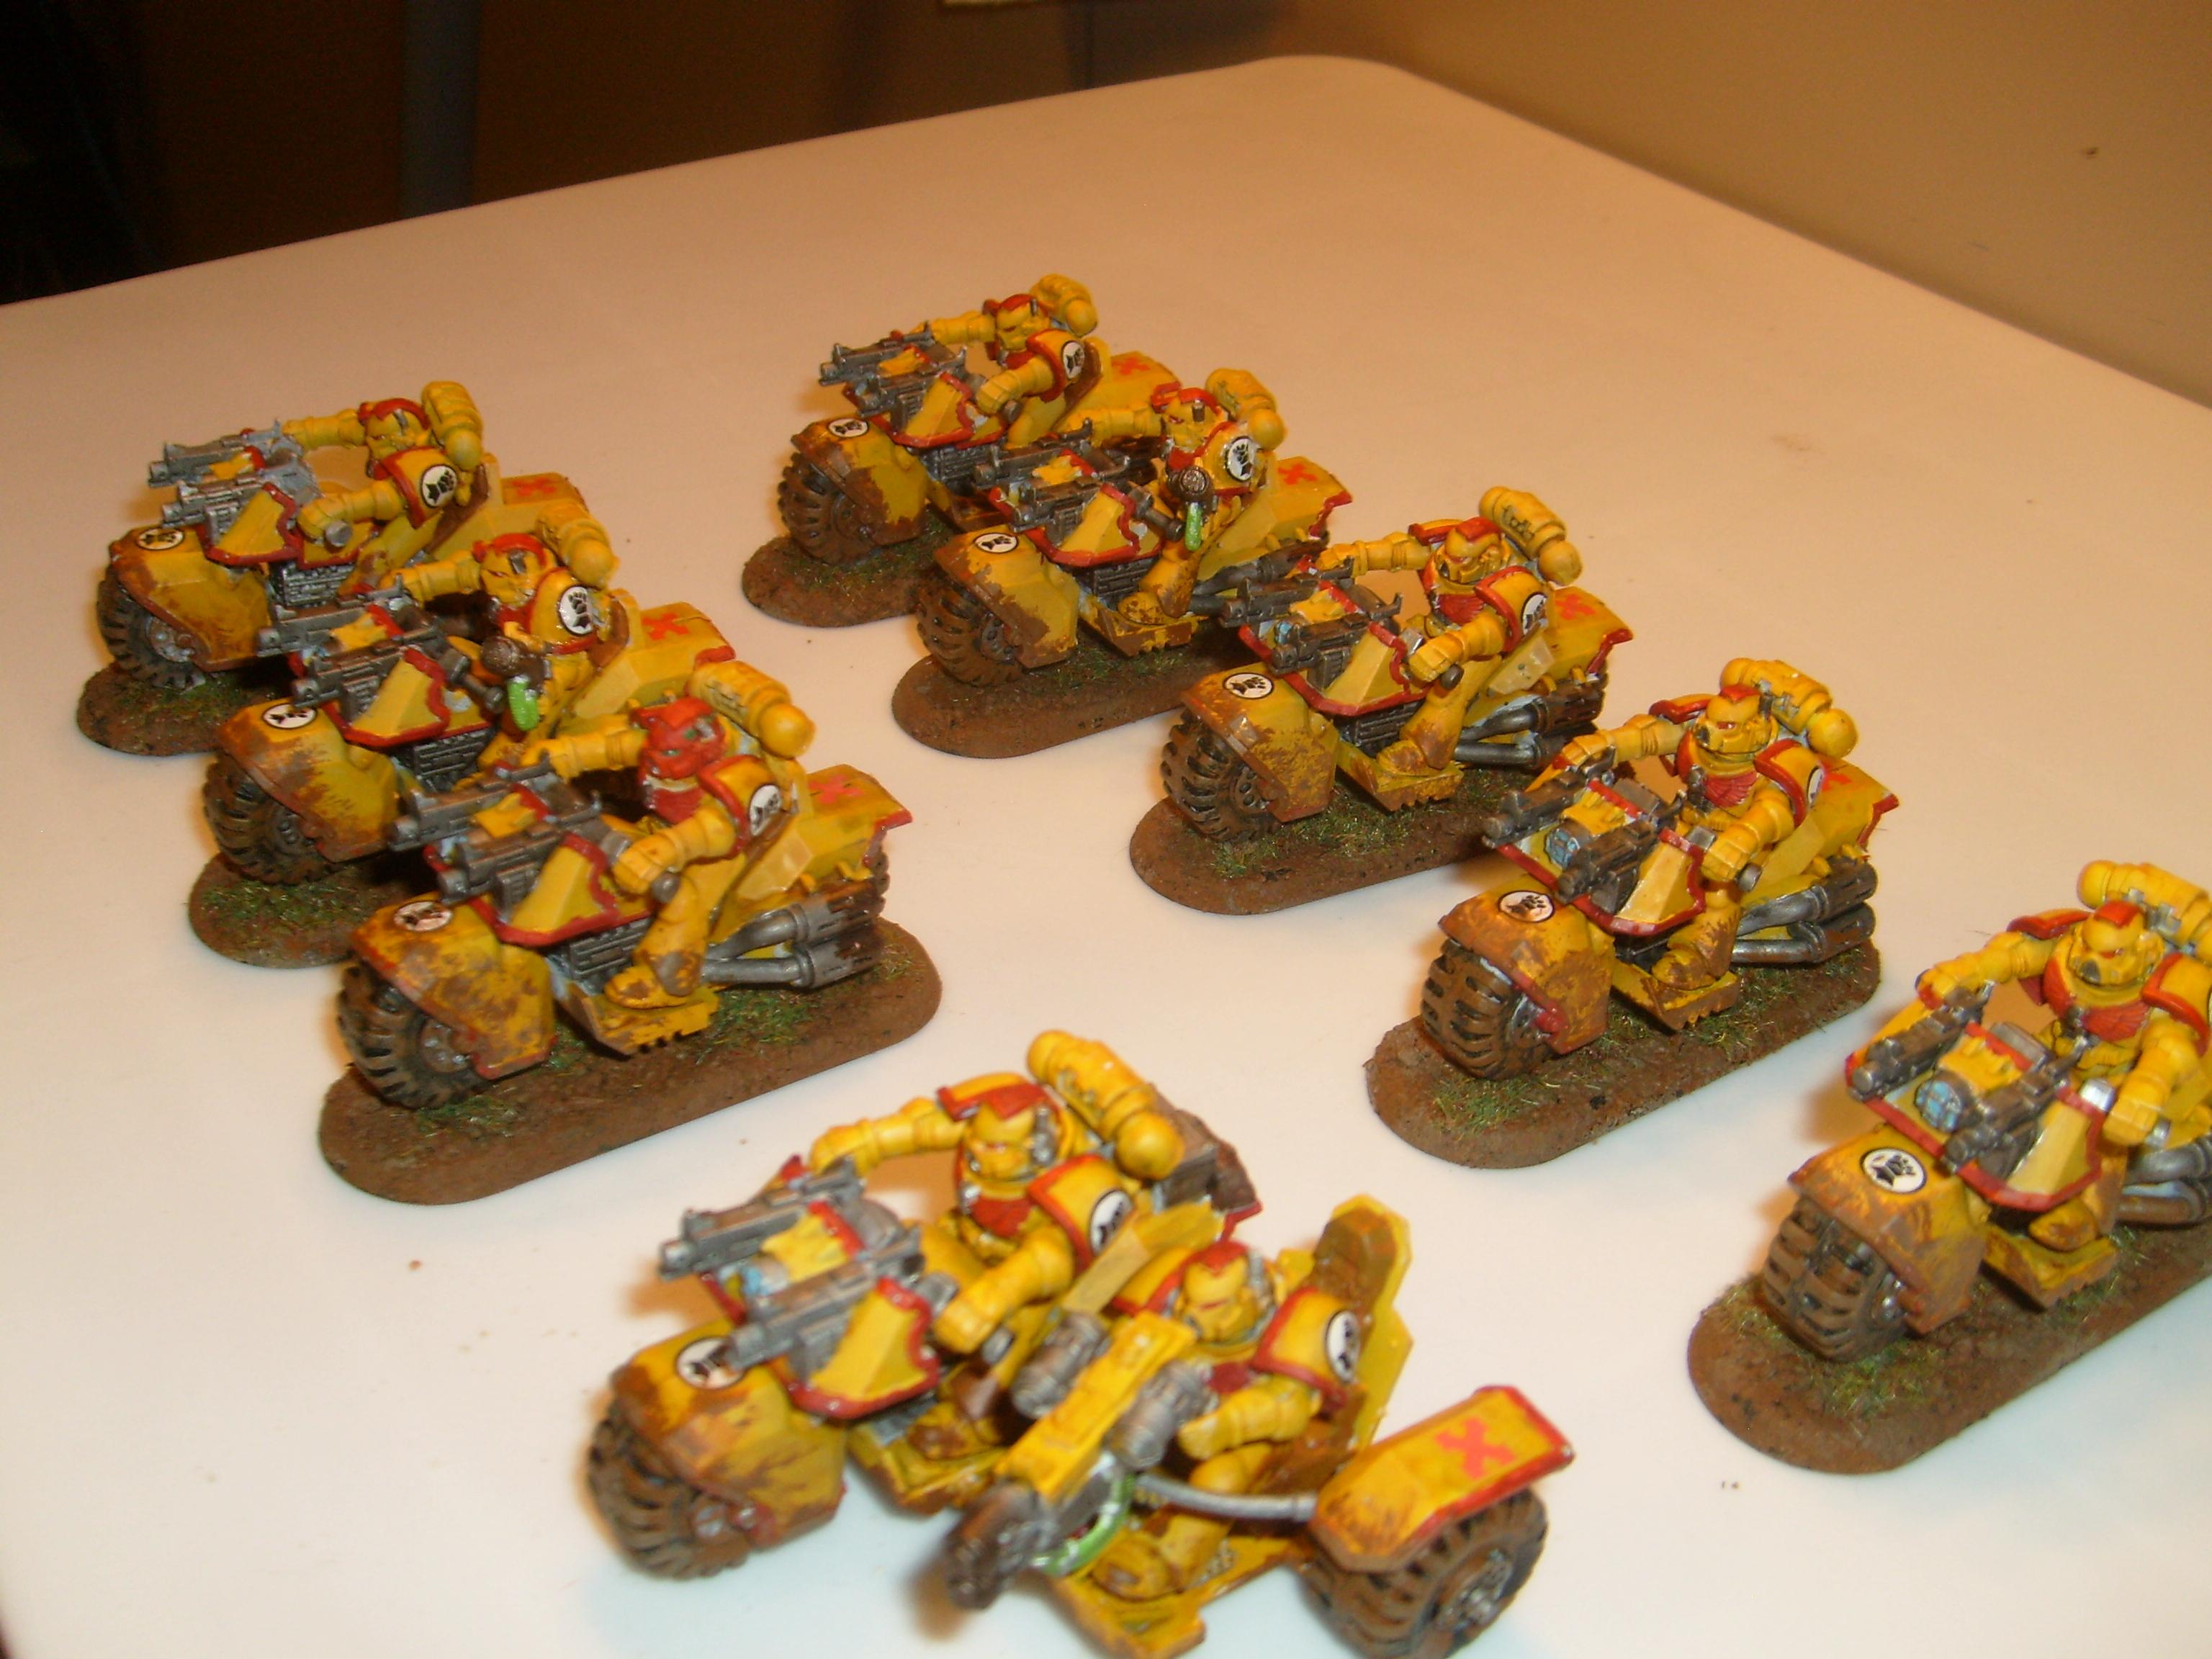 Bike, Imperial Fists, Space Marines, Warhammer 40,000